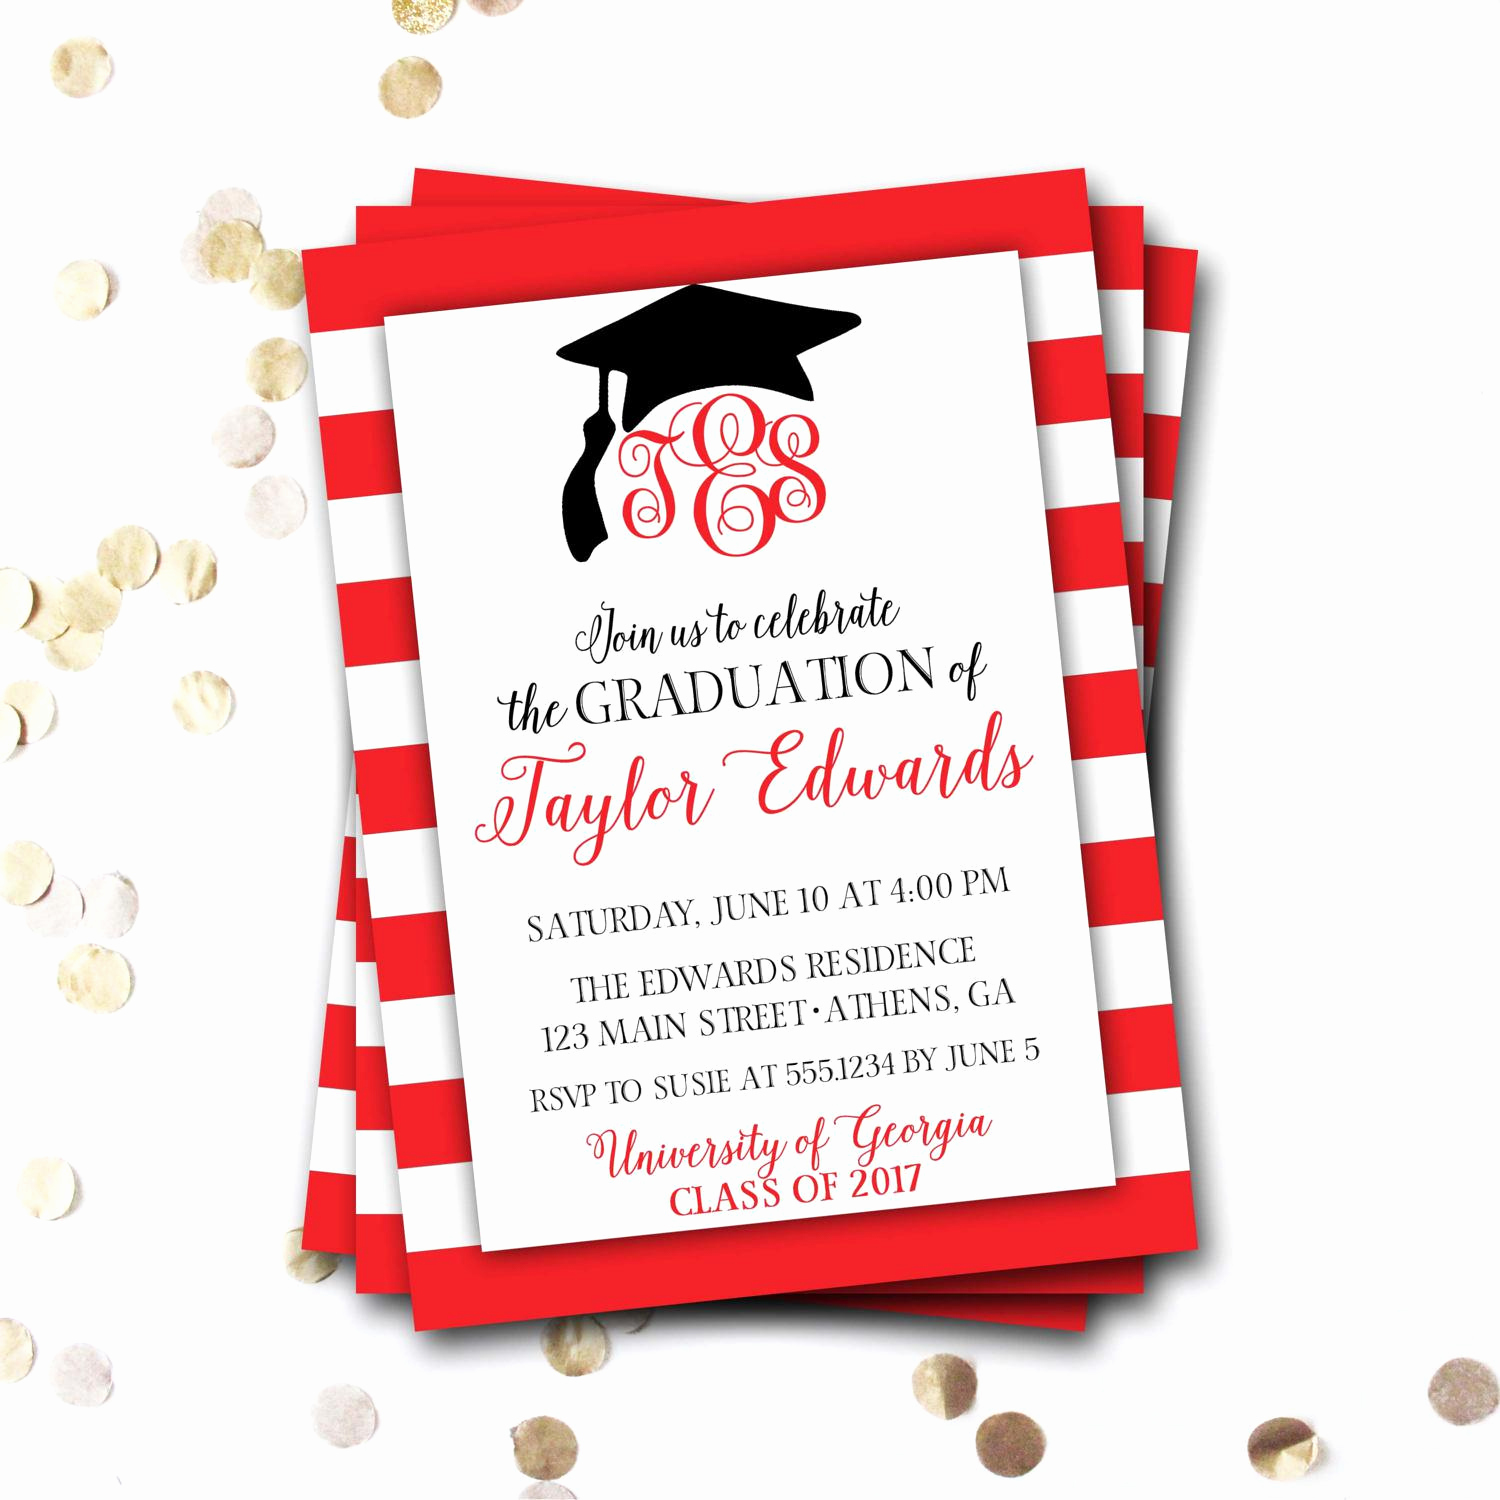 High School Graduation Ceremony Invitation Luxury Graduation Invitation Graduation Invitation Cards